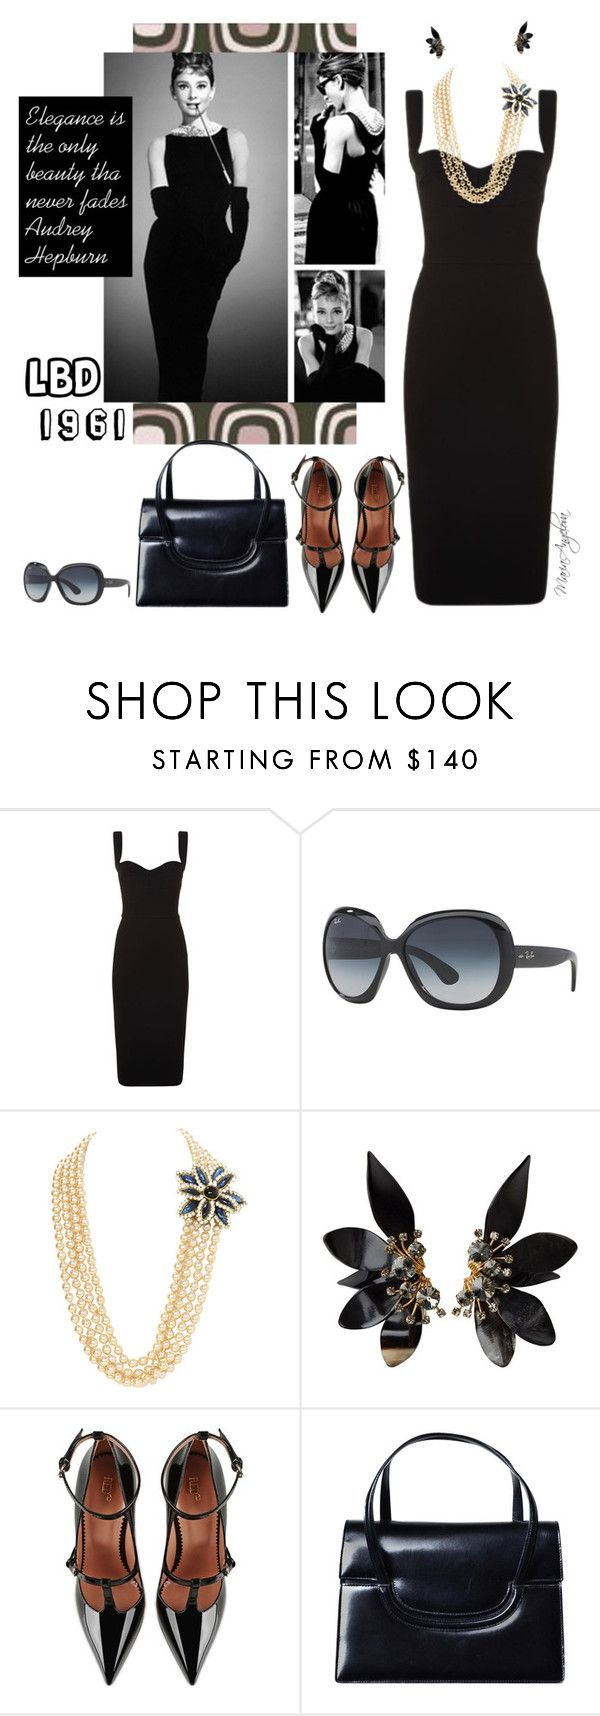 """""""1961 LBD"""" by maraia74 ❤ liked on Polyvore featuring Victoria Beckham, Ray-Ban, Marni, RED Valentino and Gucci"""